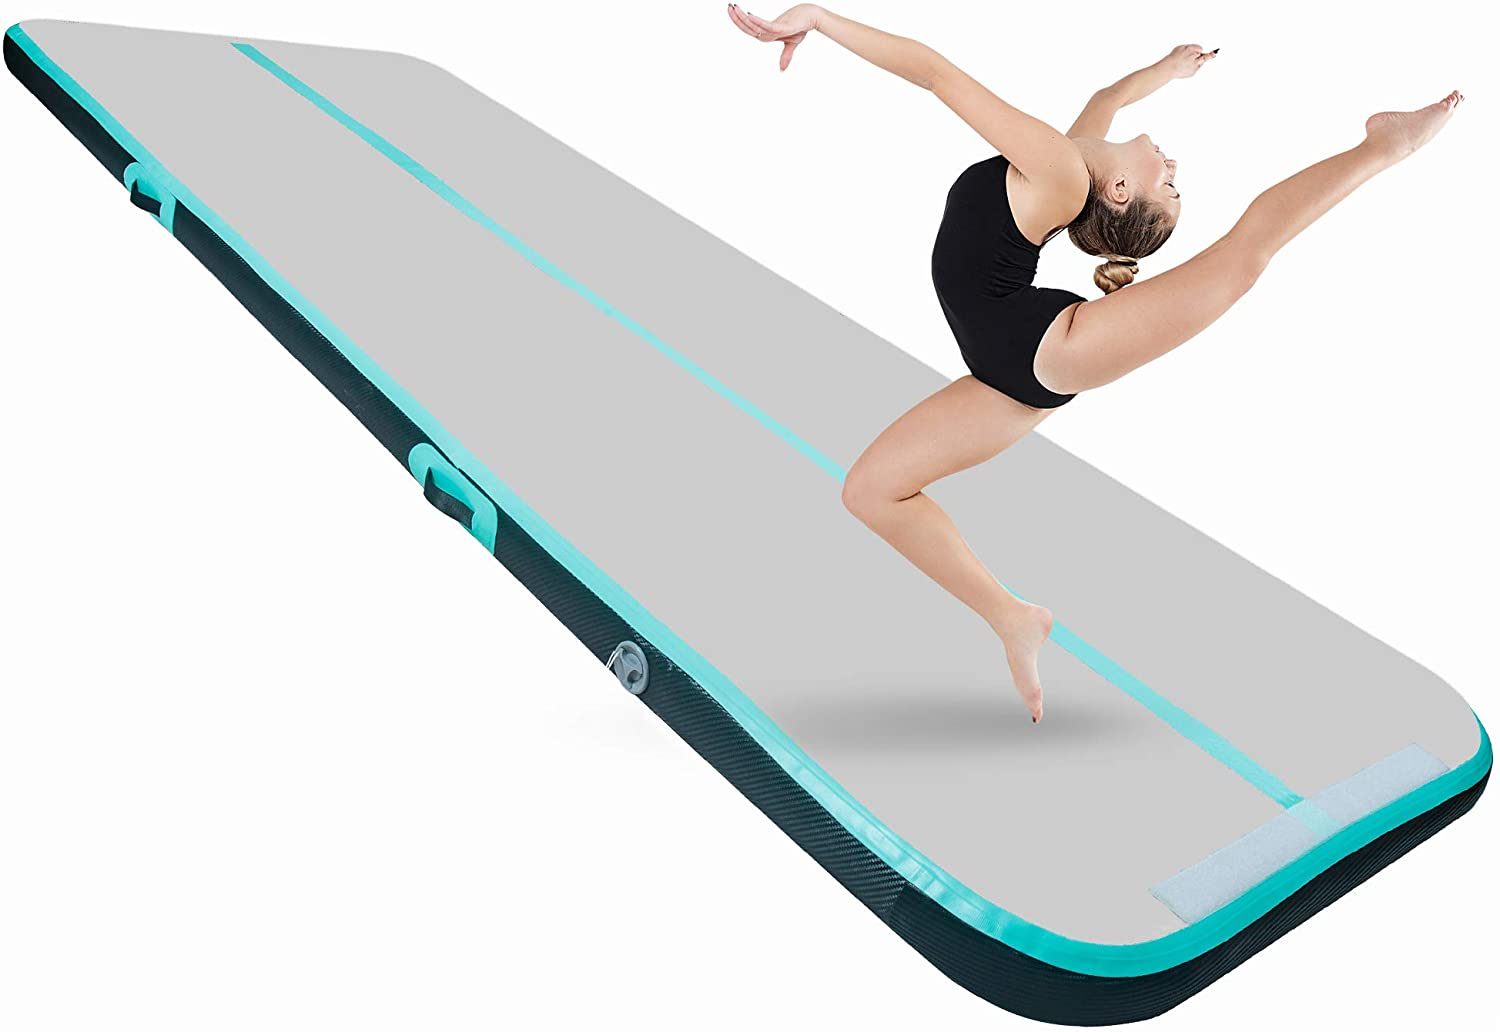 BEYOND MARINA 3.3ft 10ft 13ft 16ft 20ft Air Track Tumbling Mat Inflatable Gymnastics Mat 4/8 inches Thickness Airtrack Tumbling Mats for Home Training Cheerleading Yoga with Air Pump